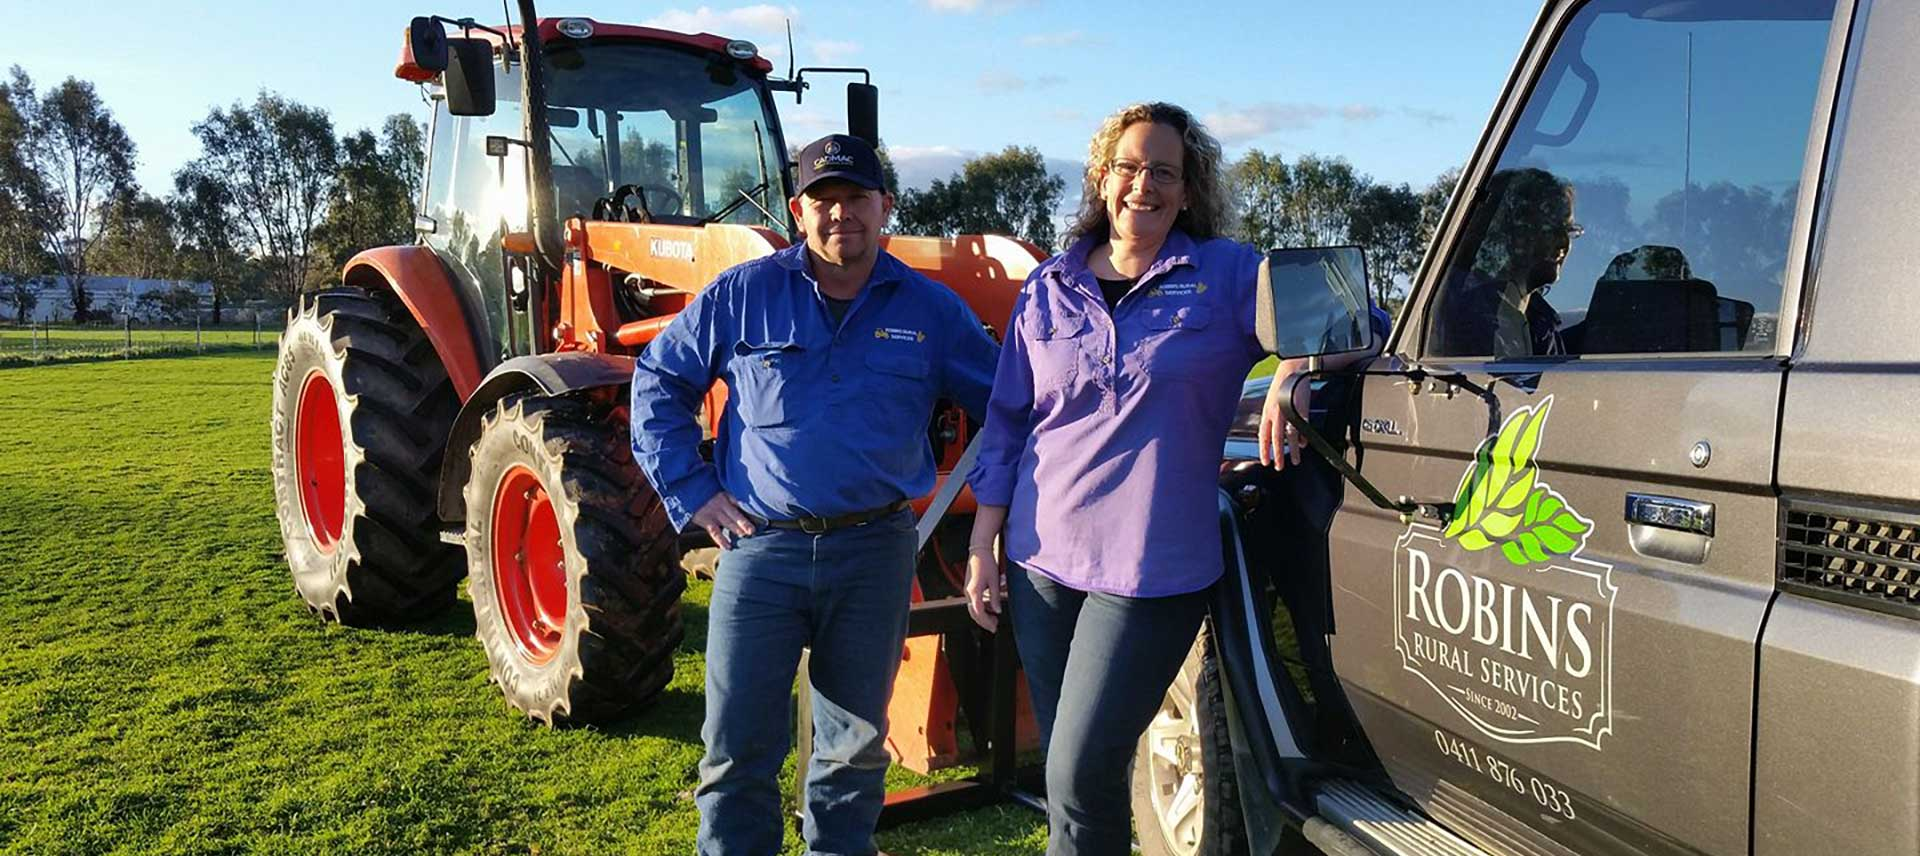 Steve & Lucy Robins have 15 years of agricultural development experience.